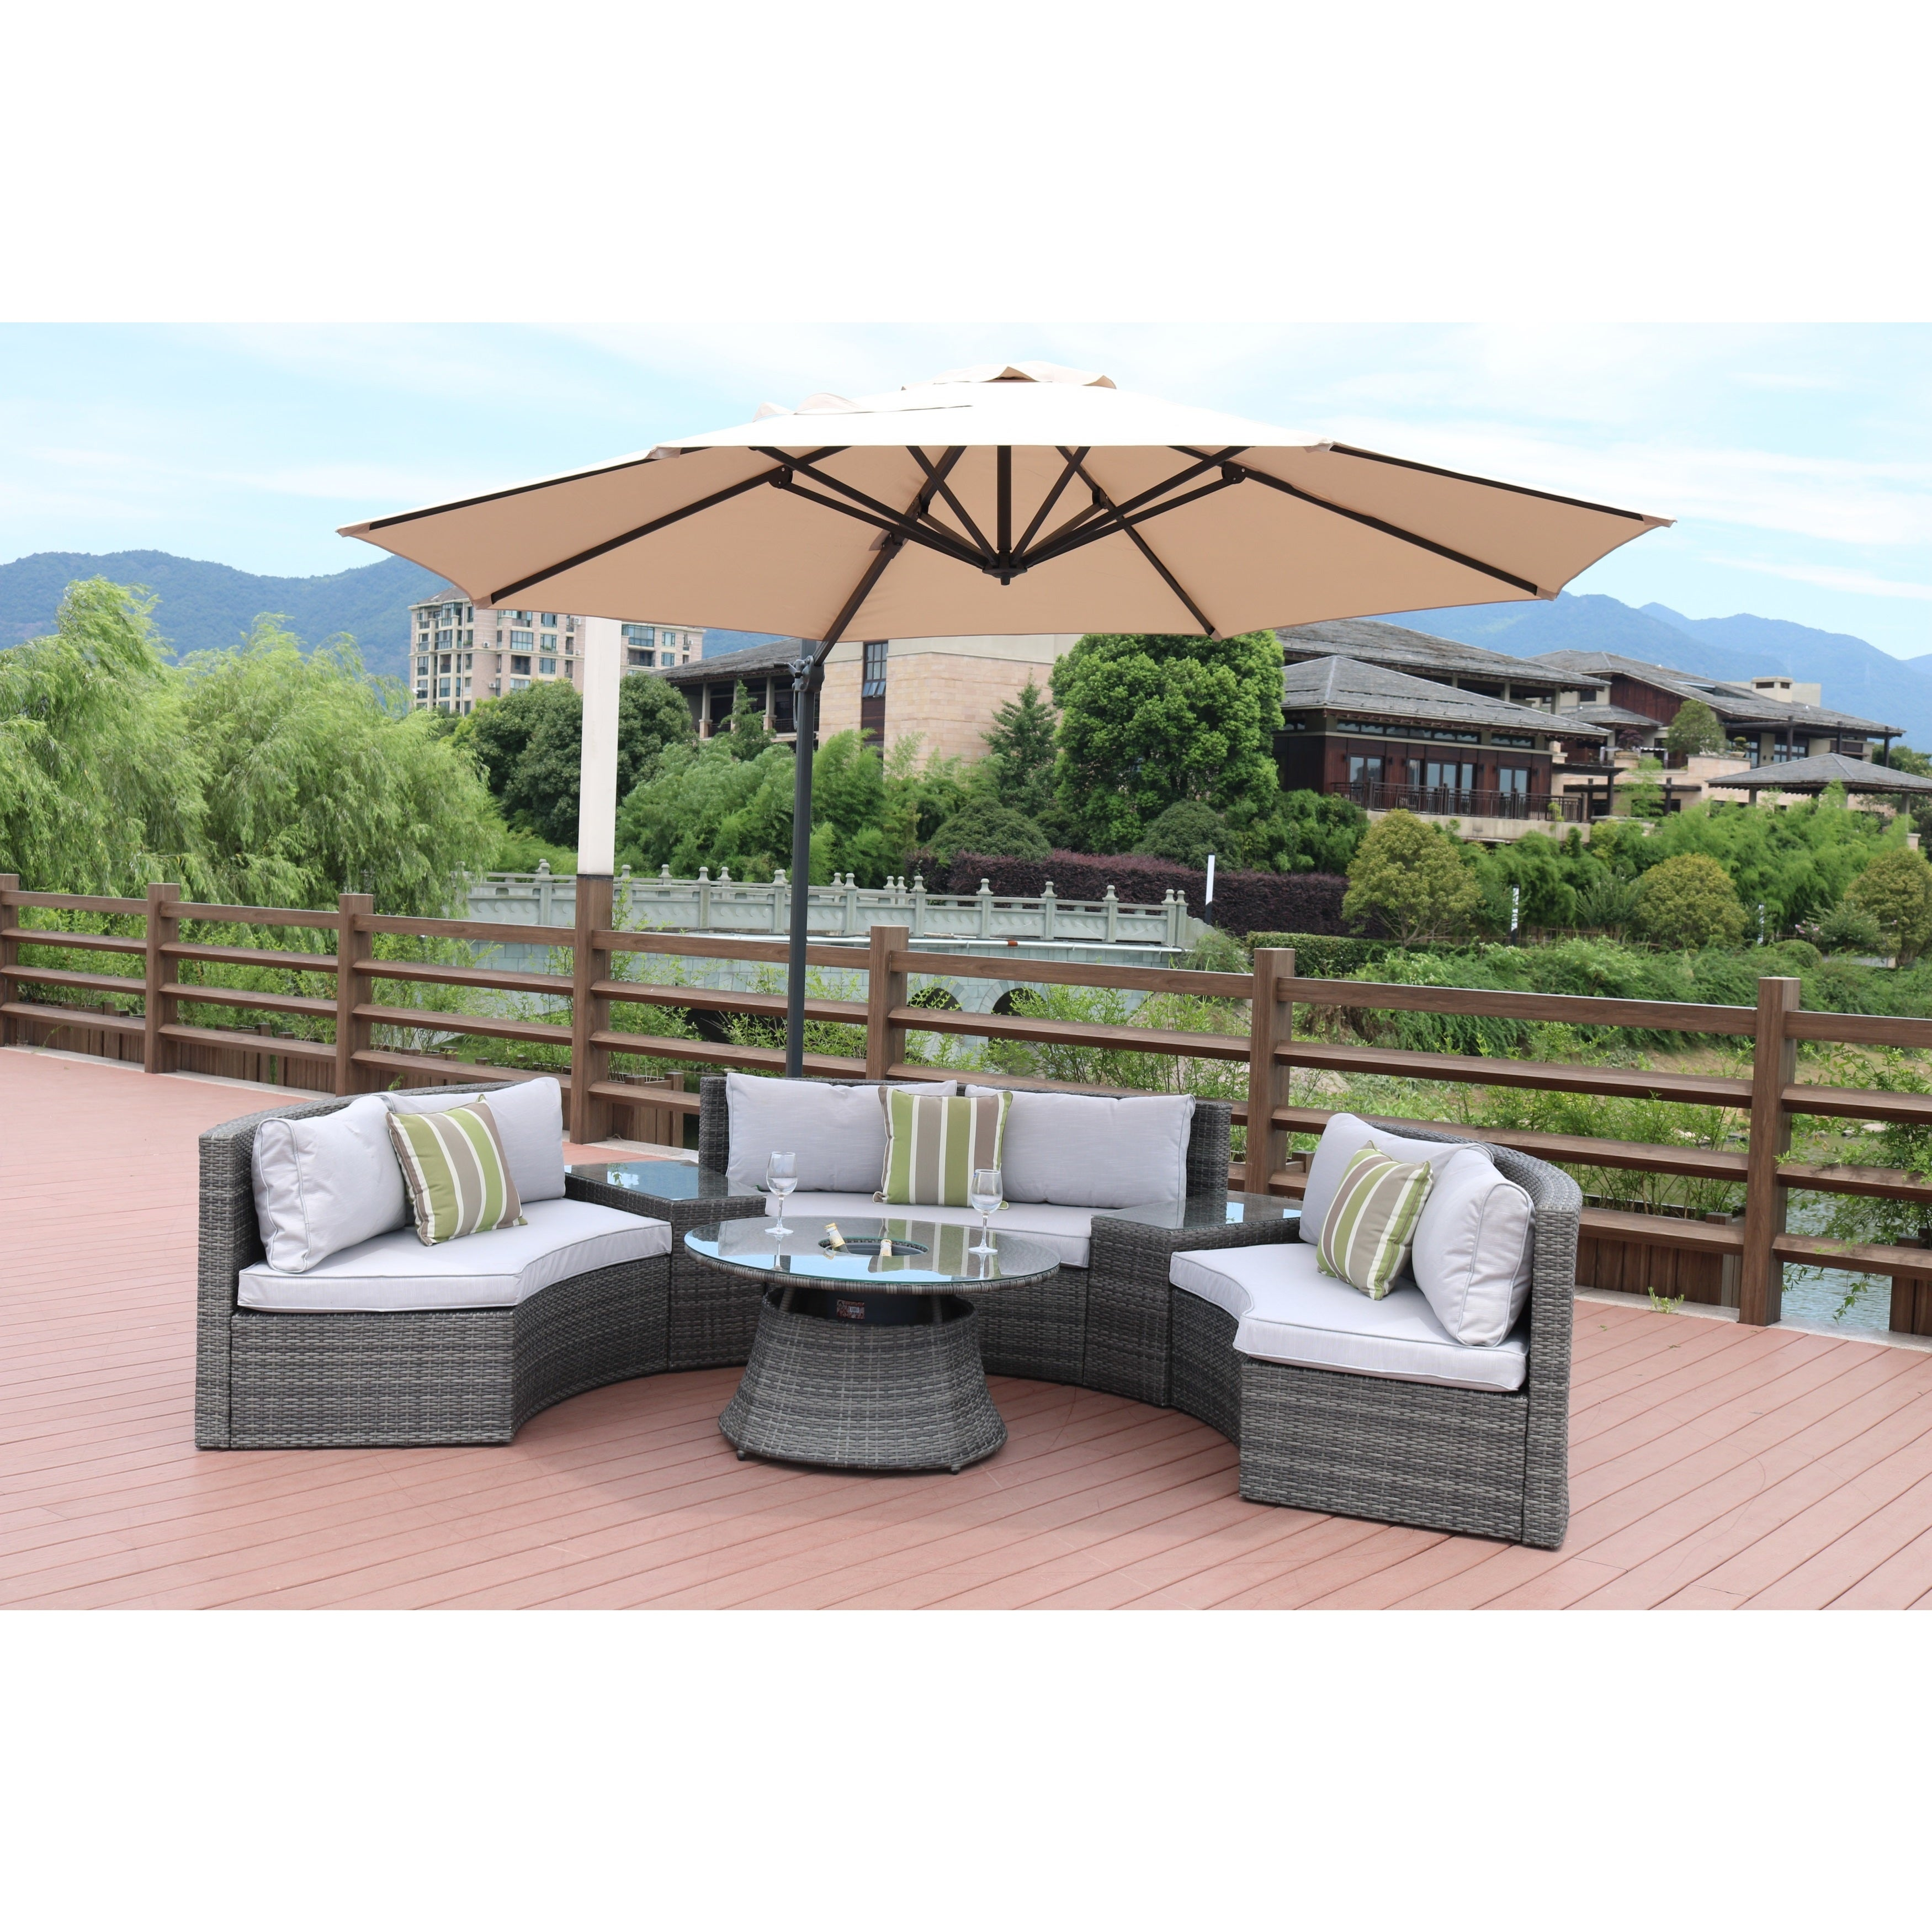 Shop half moon 7 piece curved wicker patio furniture set with 11 5 foot cantilever umbrella parasol by direct wicker free shipping today overstock